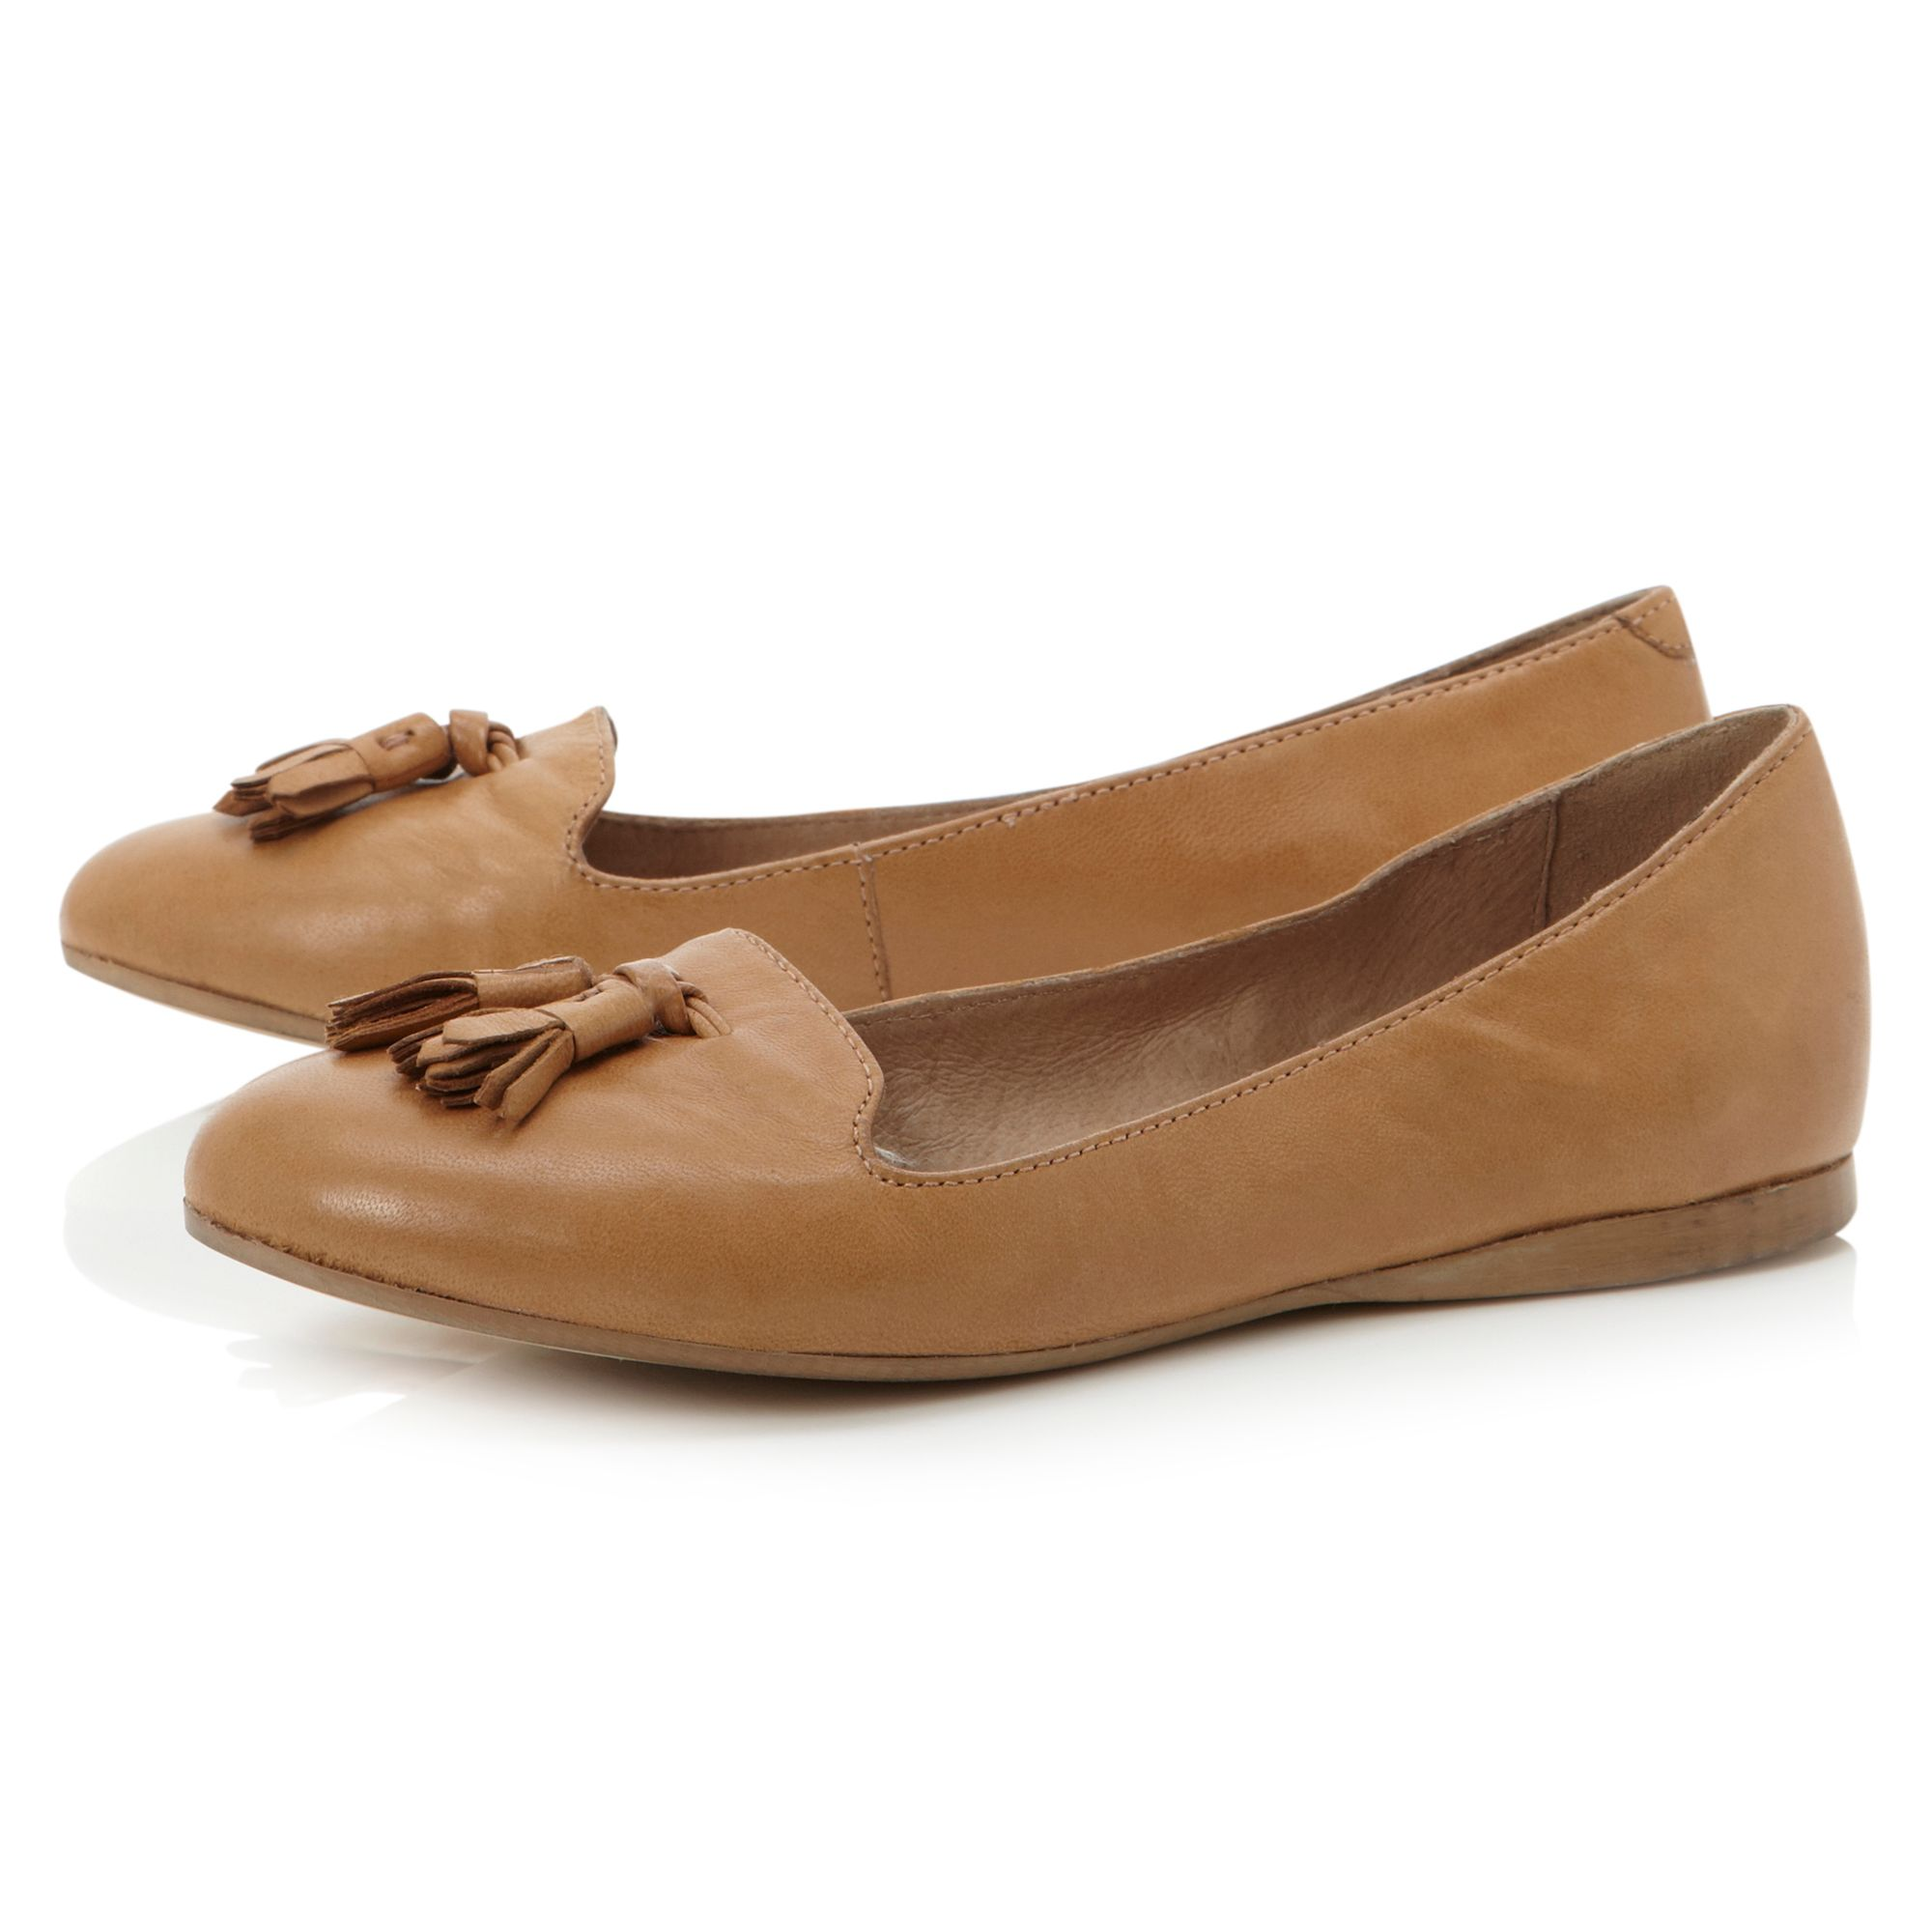 Longacres slipper cut with tassle loafer shoes